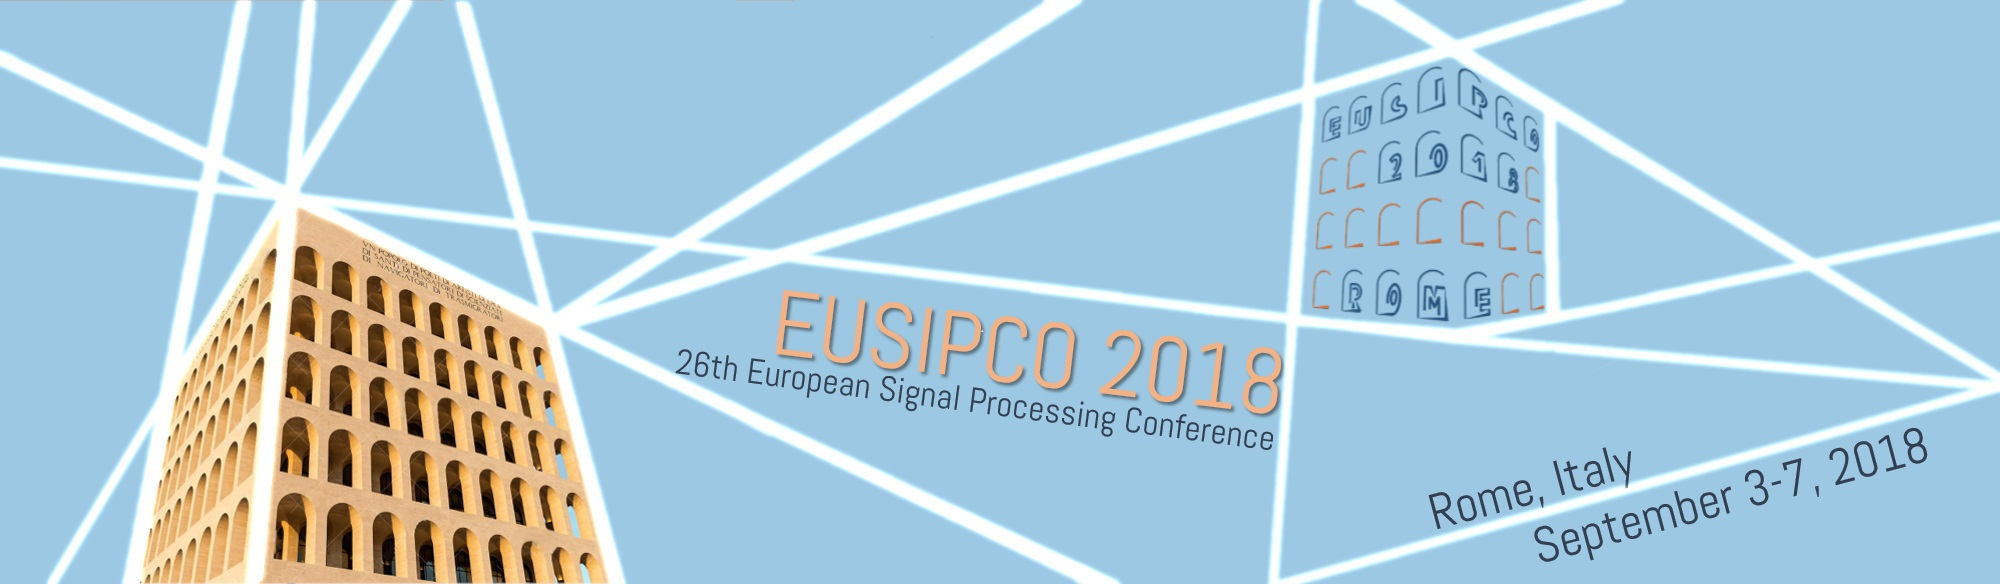 European Signal Processing Conference